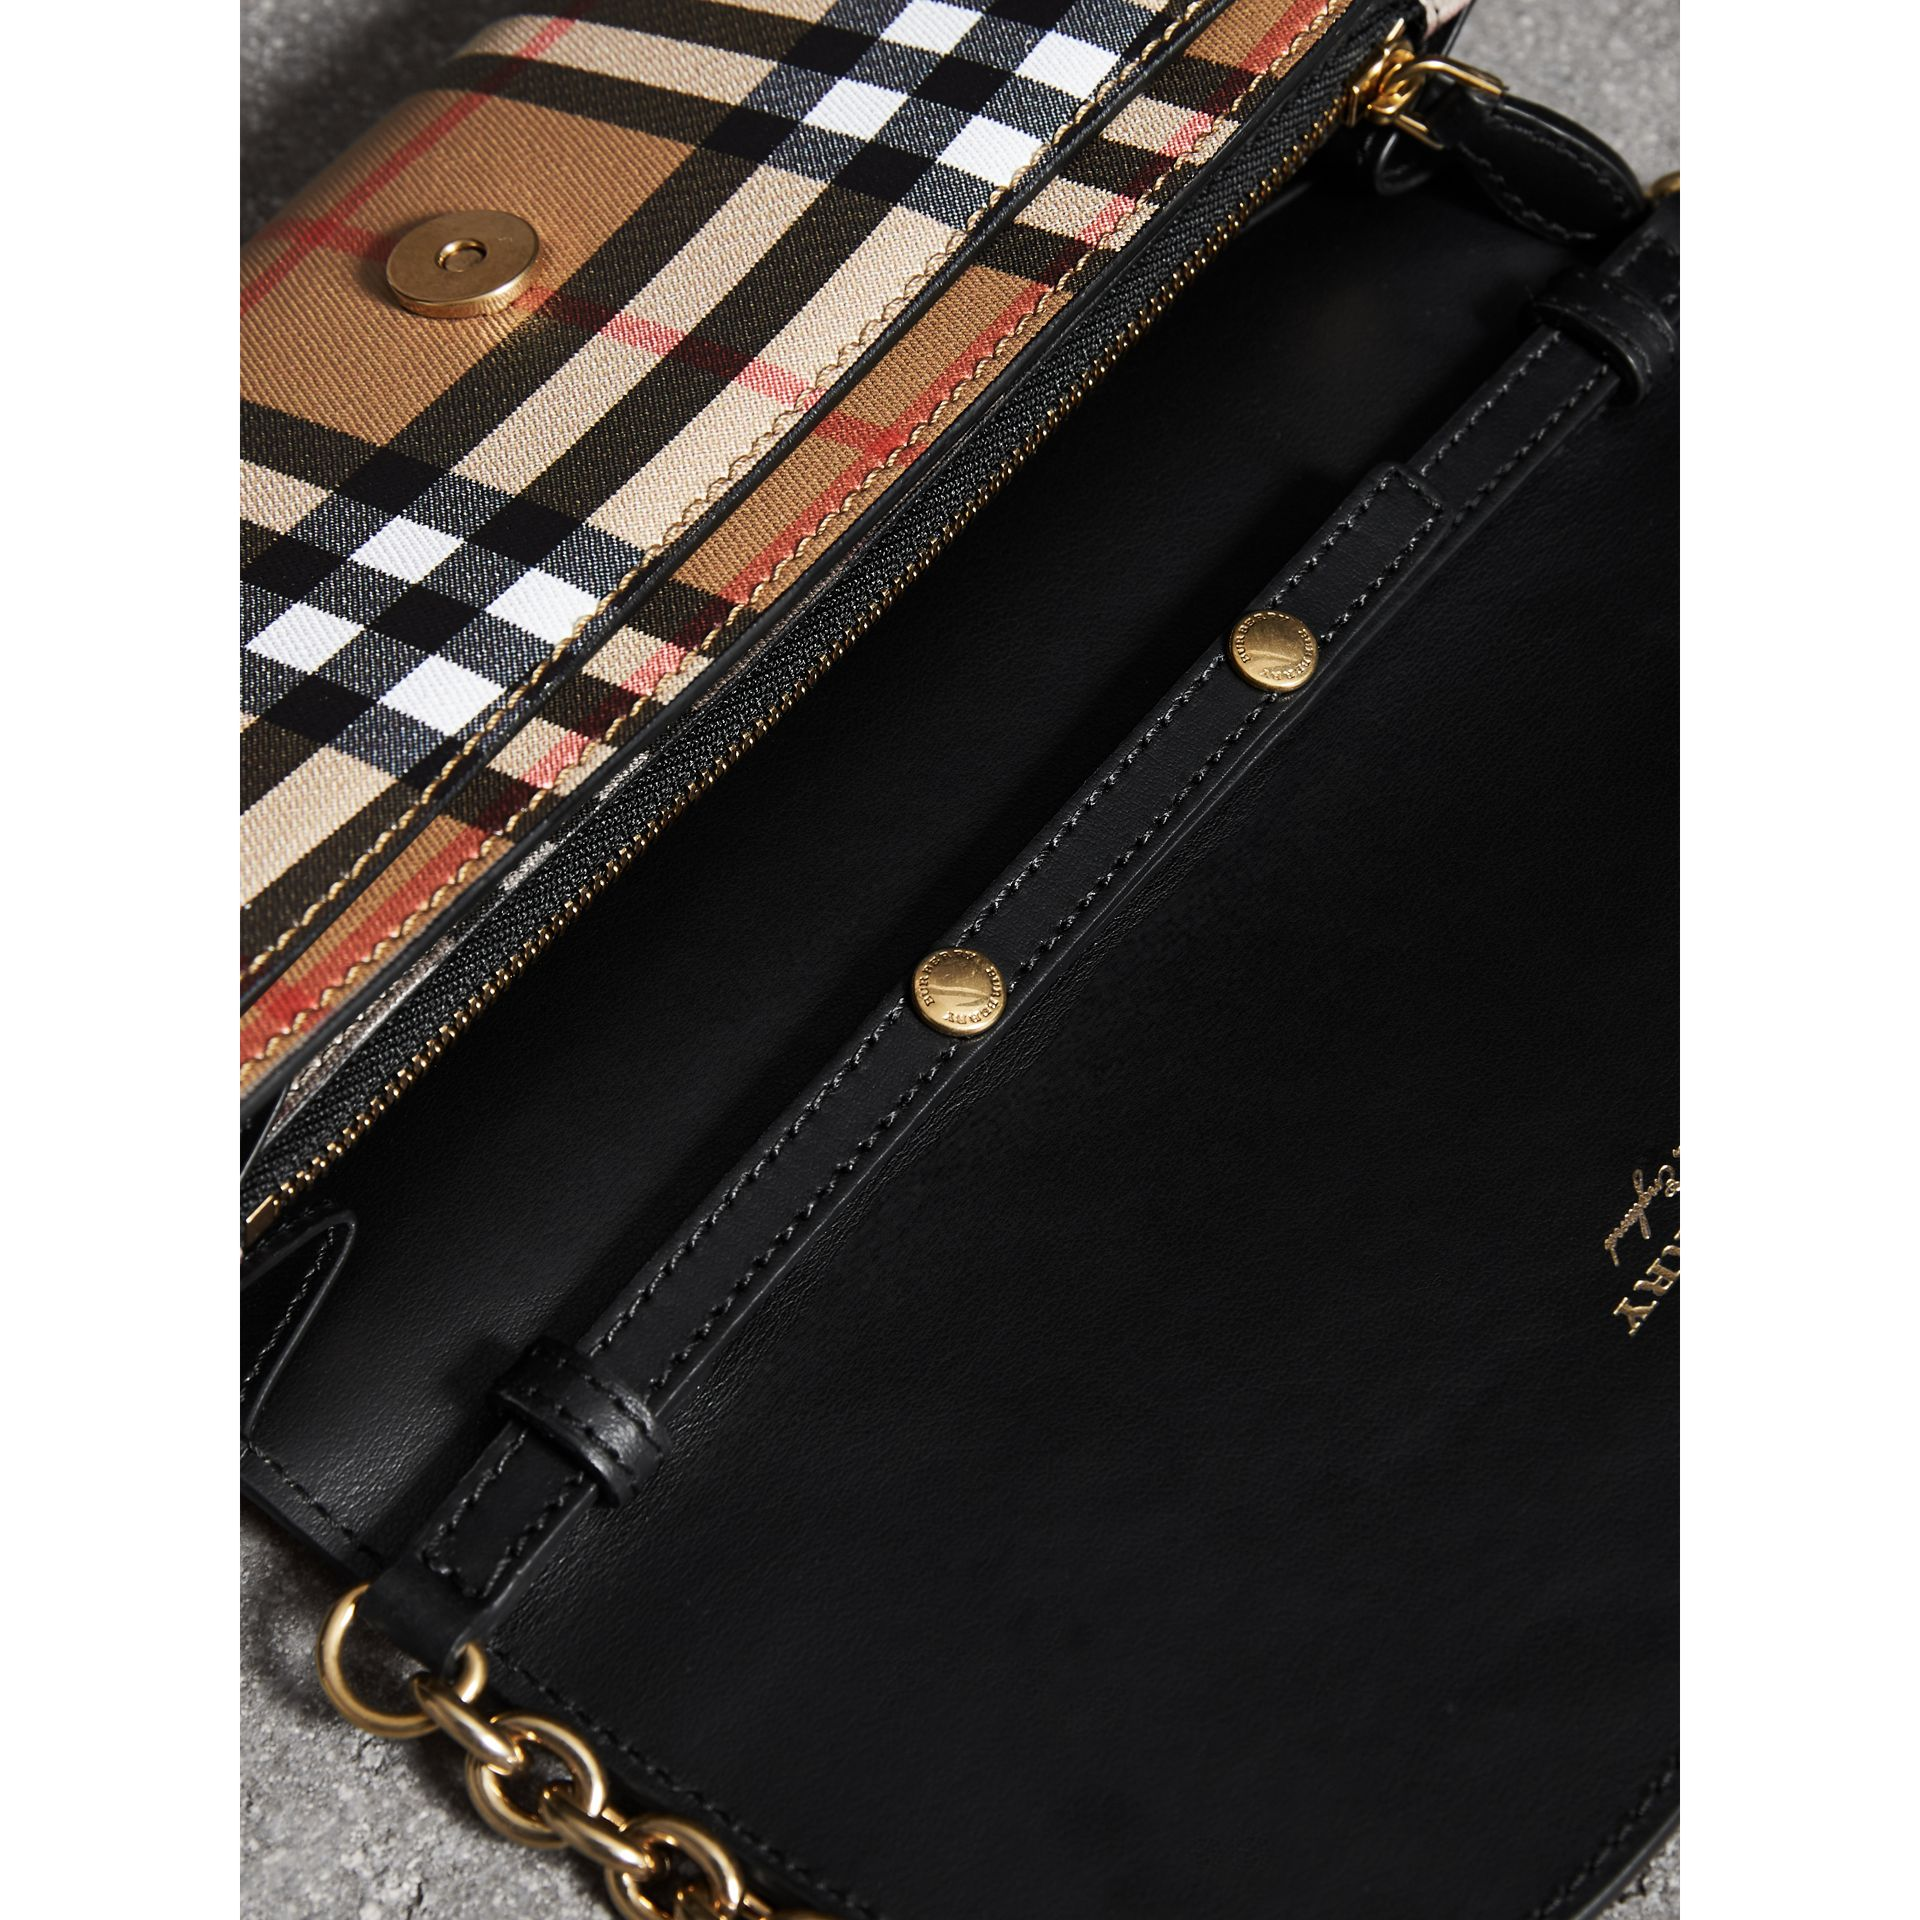 Vintage Check and Leather Wallet with Chain in Black - Women | Burberry - gallery image 5